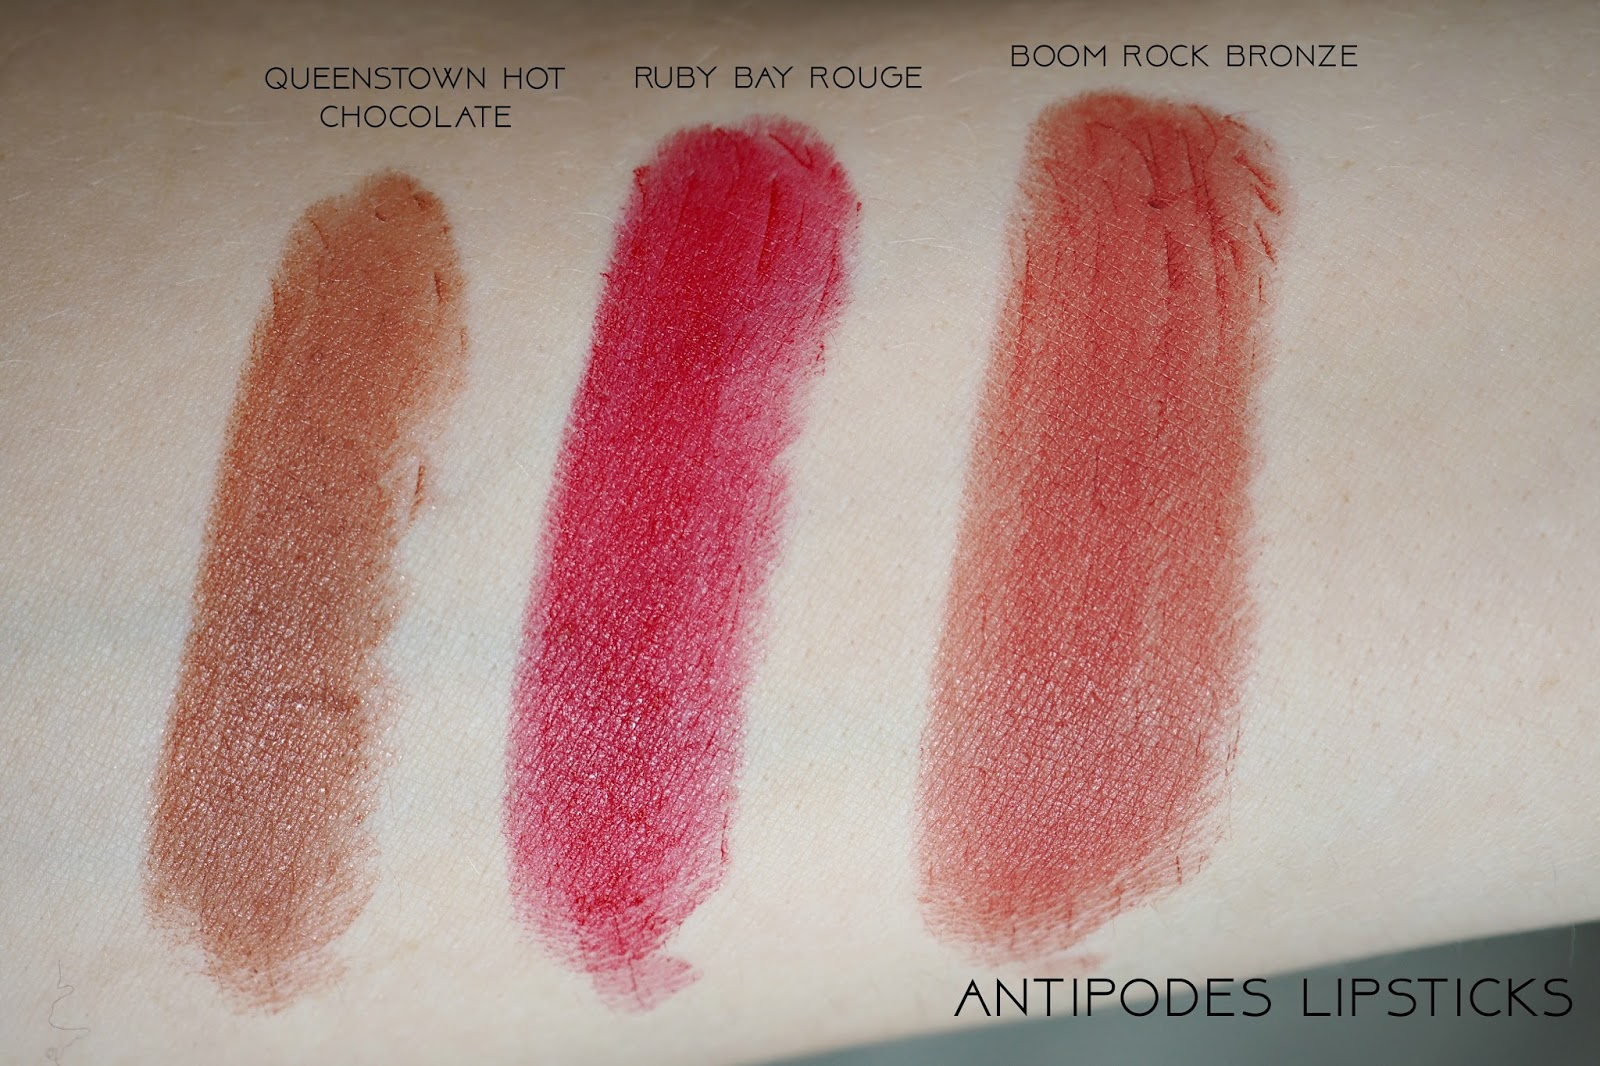 Swatches of Antipodes lipsticks in shades Queentown Hot Chocolate, Boom Rock Bronze and Ruby Bay Rouge.